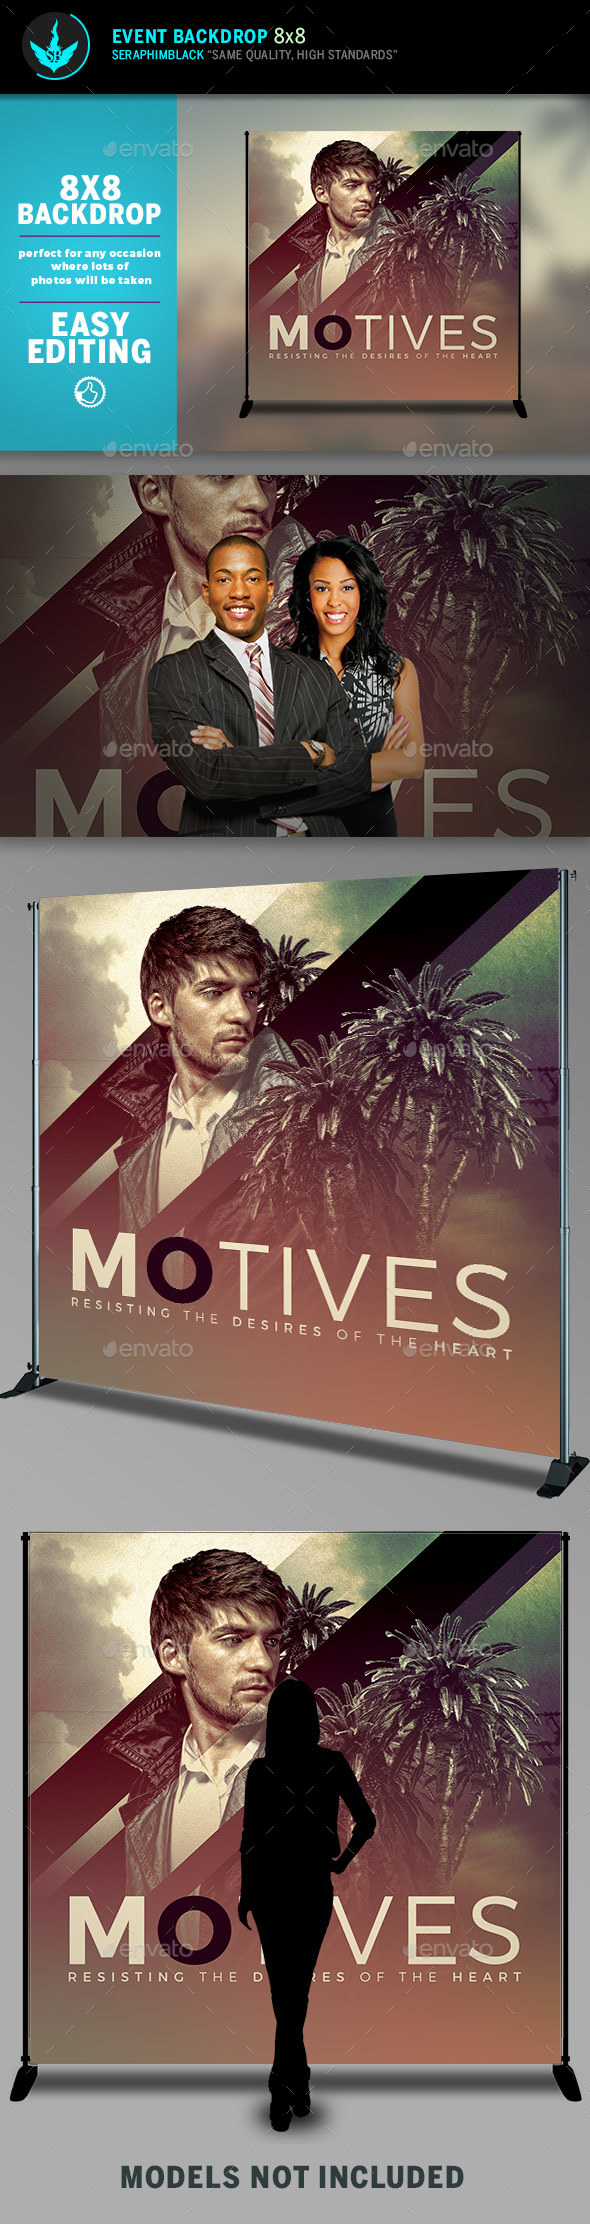 Motives 8x8 Event Backdrop Template - Signage Print Templates